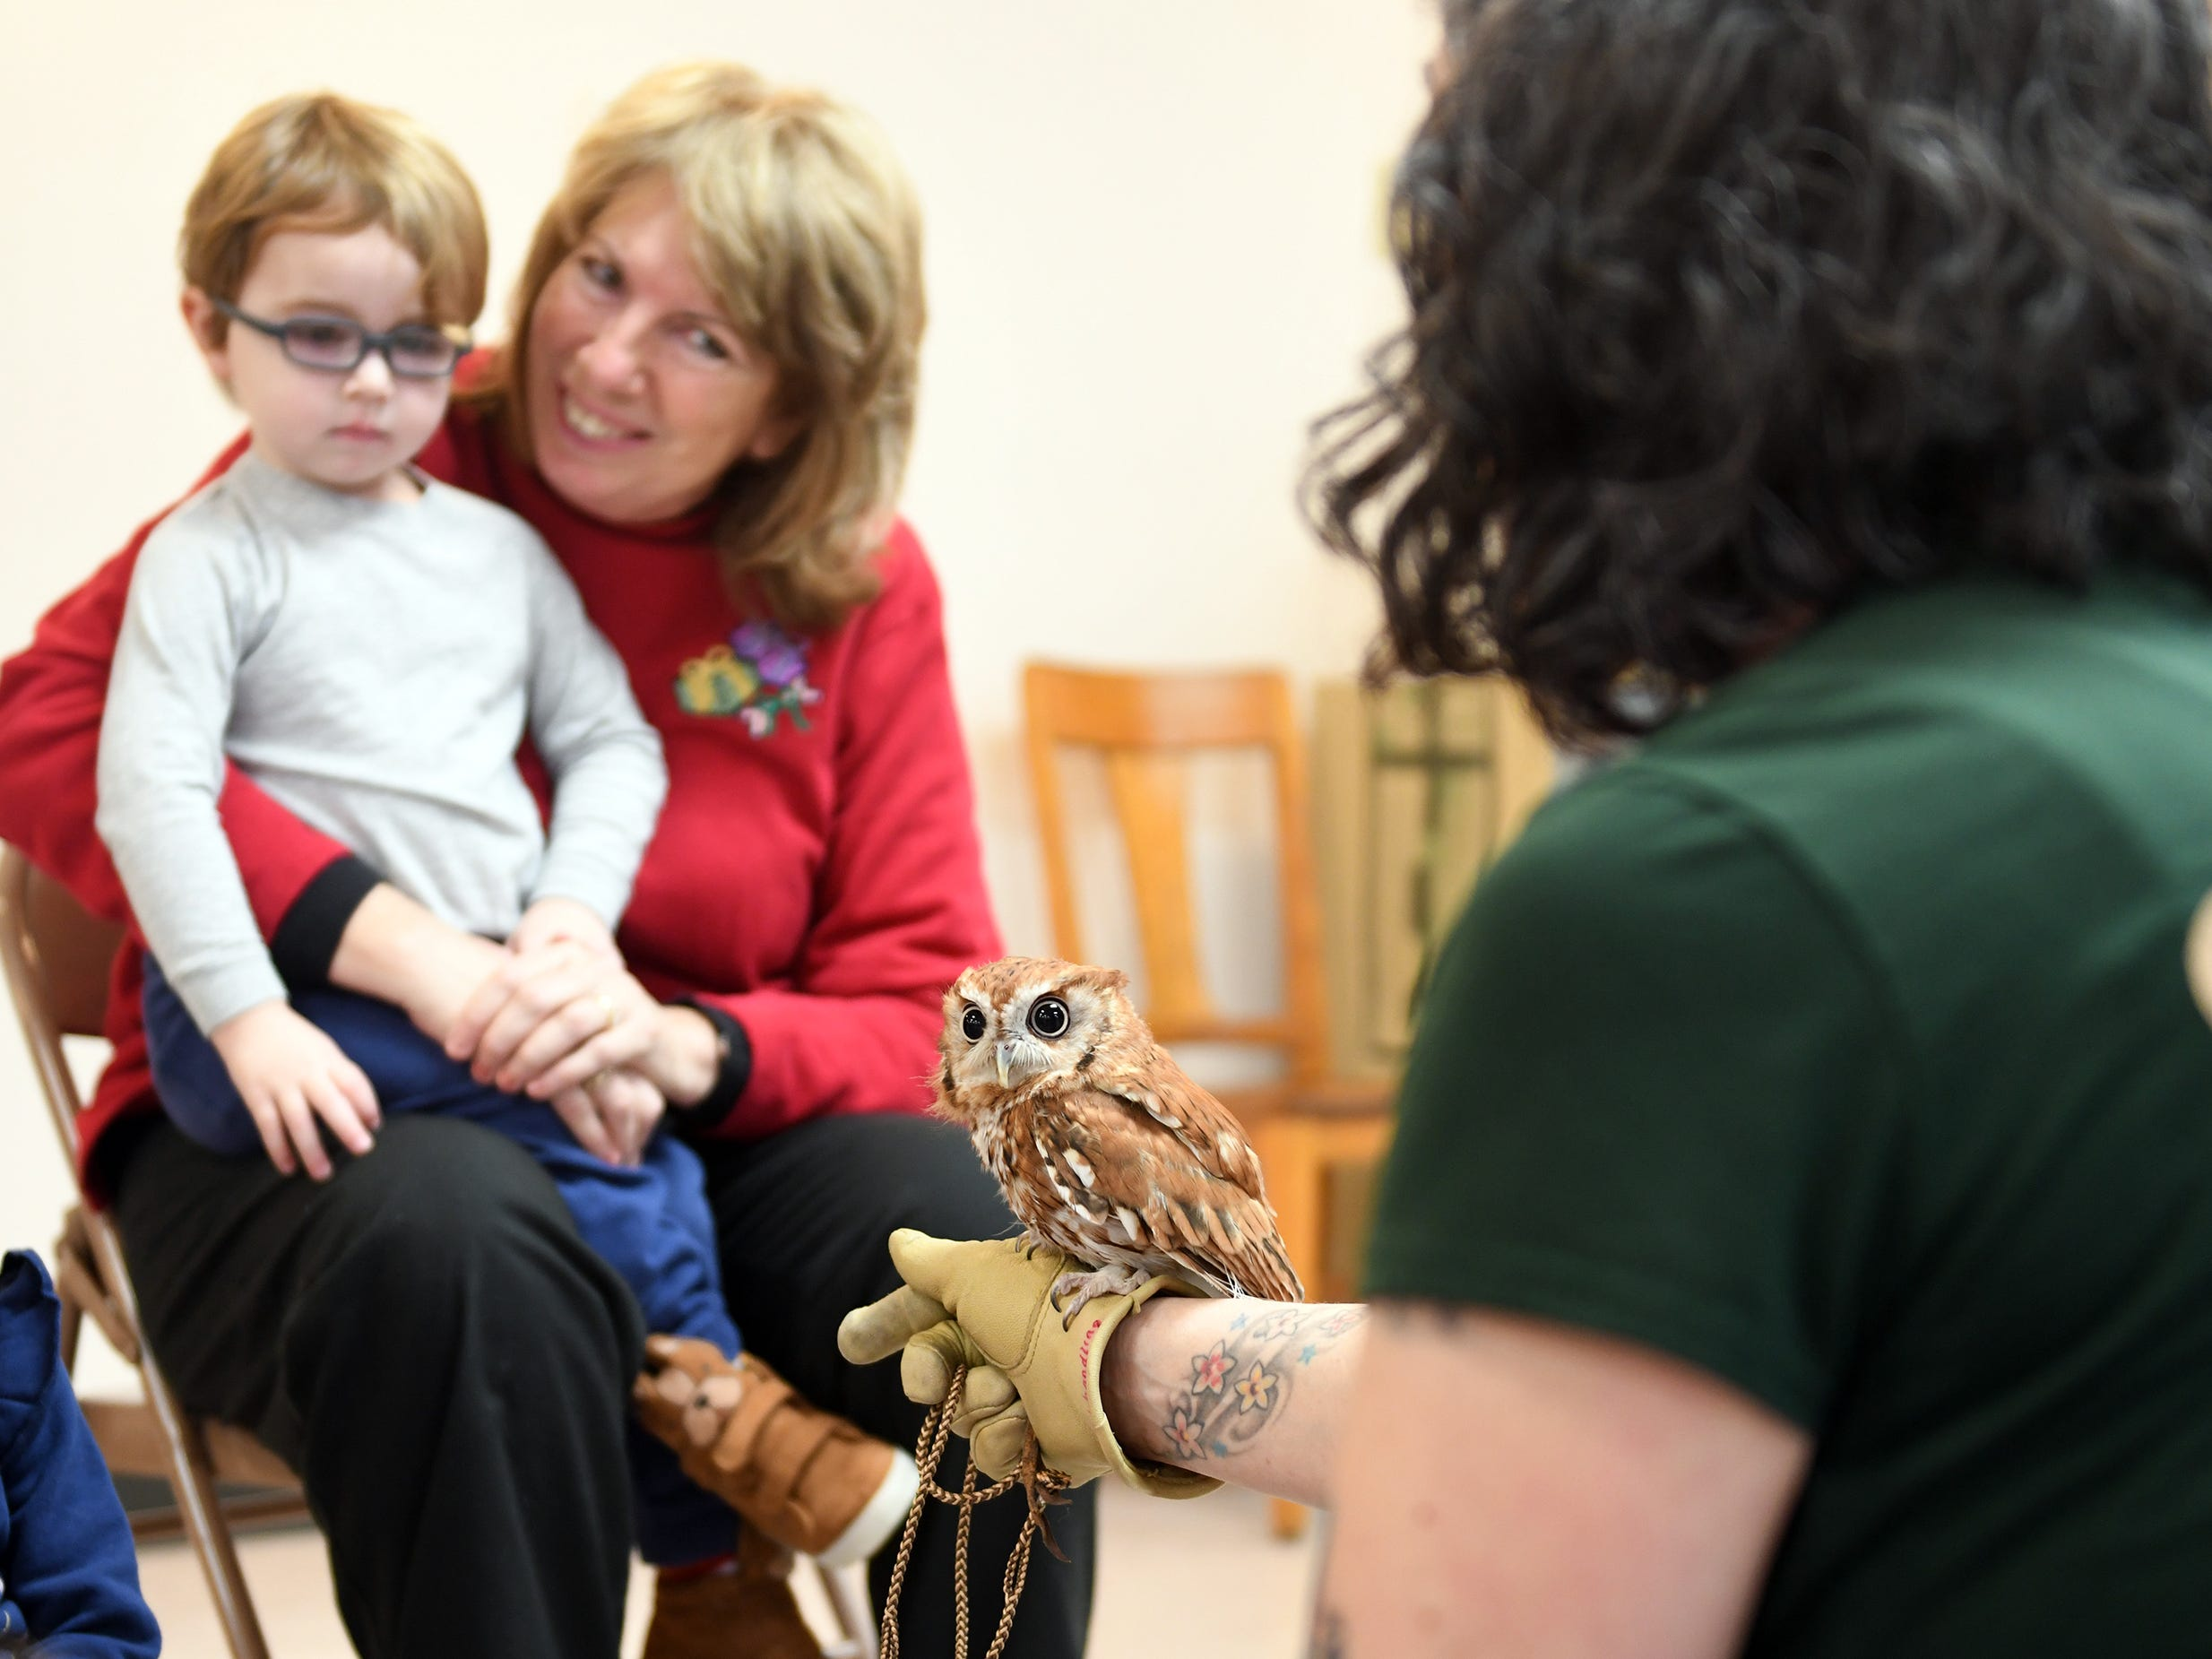 Cohanzick Zoo zookeeper Alison Bohn shows off a screech owl named Wisp William during Zoobrary time as Cheryl Fox holds Jackson, 3, of Vineland at the Bridgeton Public Library on Thursday, December 20, 2018.